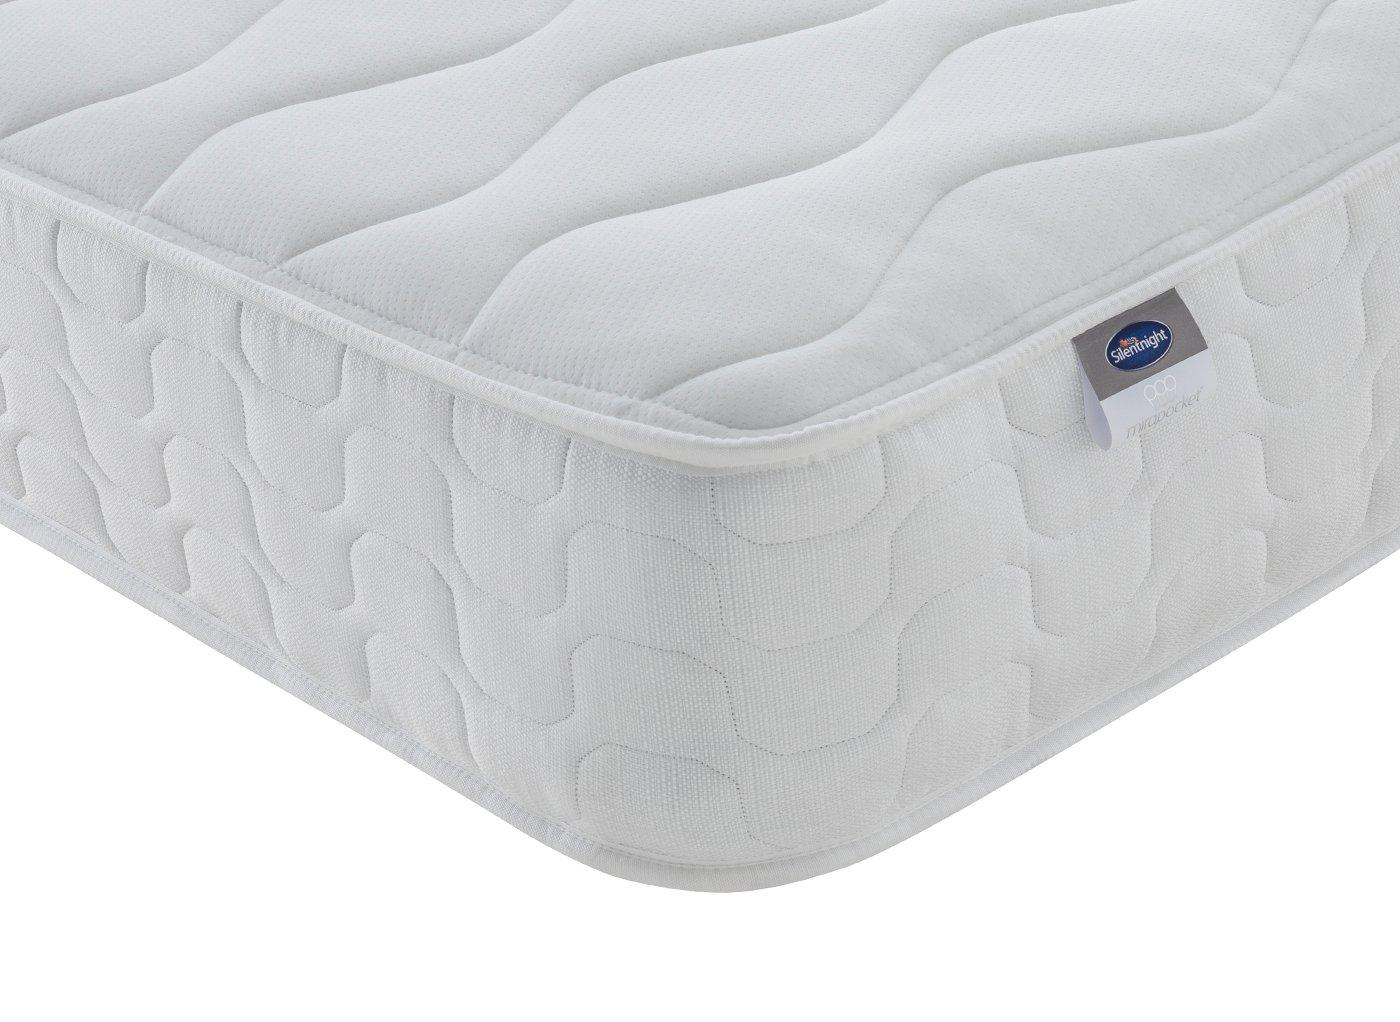 Silentnight Ferndale D Mattress 4'6 Double